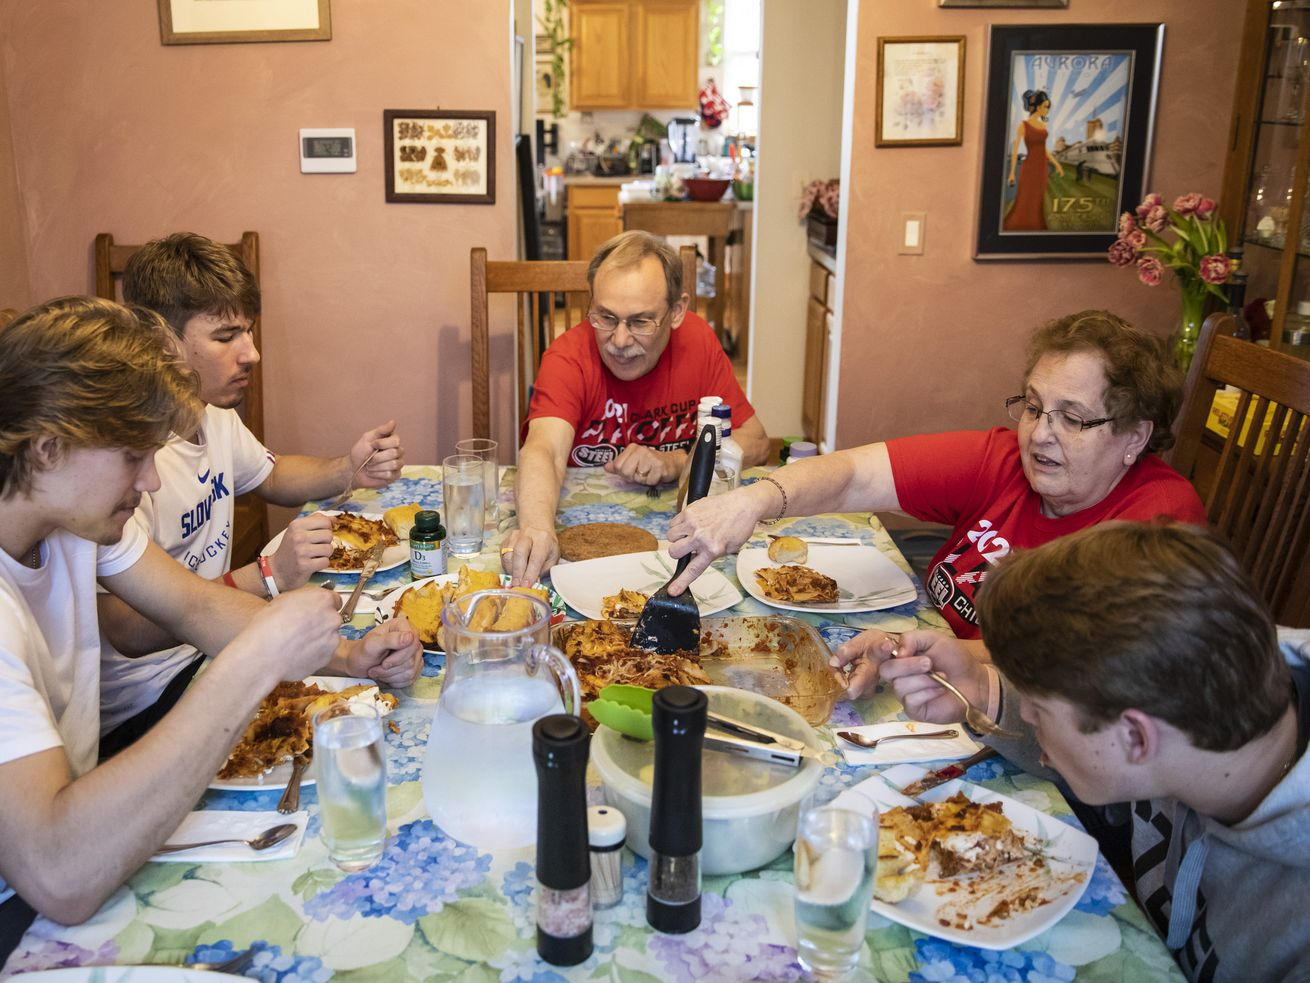 (From left) Jack Bar, Simon Latkoczy, Brian Gravenhorst, Marcy Gravenhorst and Lukas Gustafsson sit down for a lasagna dinner at the Gravenhorst home in Aurora, Wednesday evening, April 28, 2021. Brian and Marcie Gravenhorst are a billet family for Chicago Steel players Bar, Latkoczy and Gustafsson, who are from Canada, Slovakia and the American state of Georgia, respectively. | Ashlee Rezin Garcia/Sun-Times